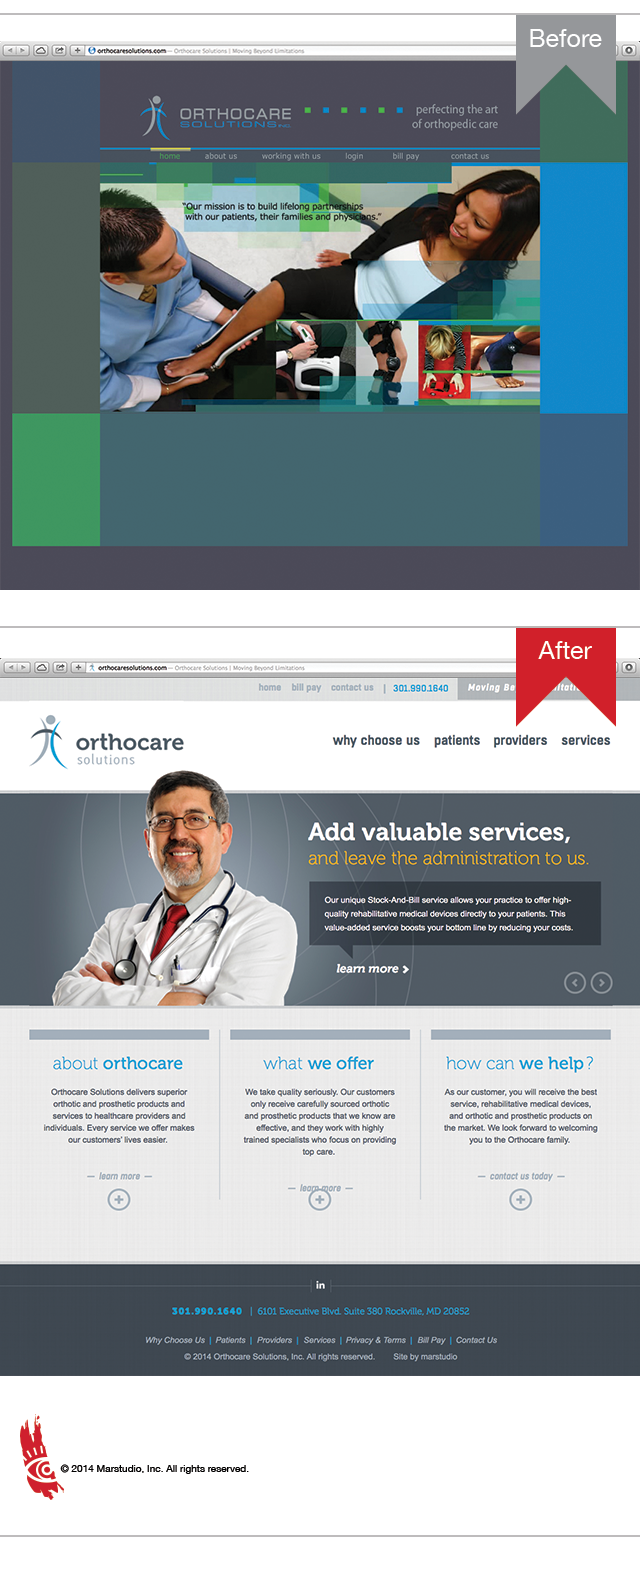 Orthocare-Before-and-After